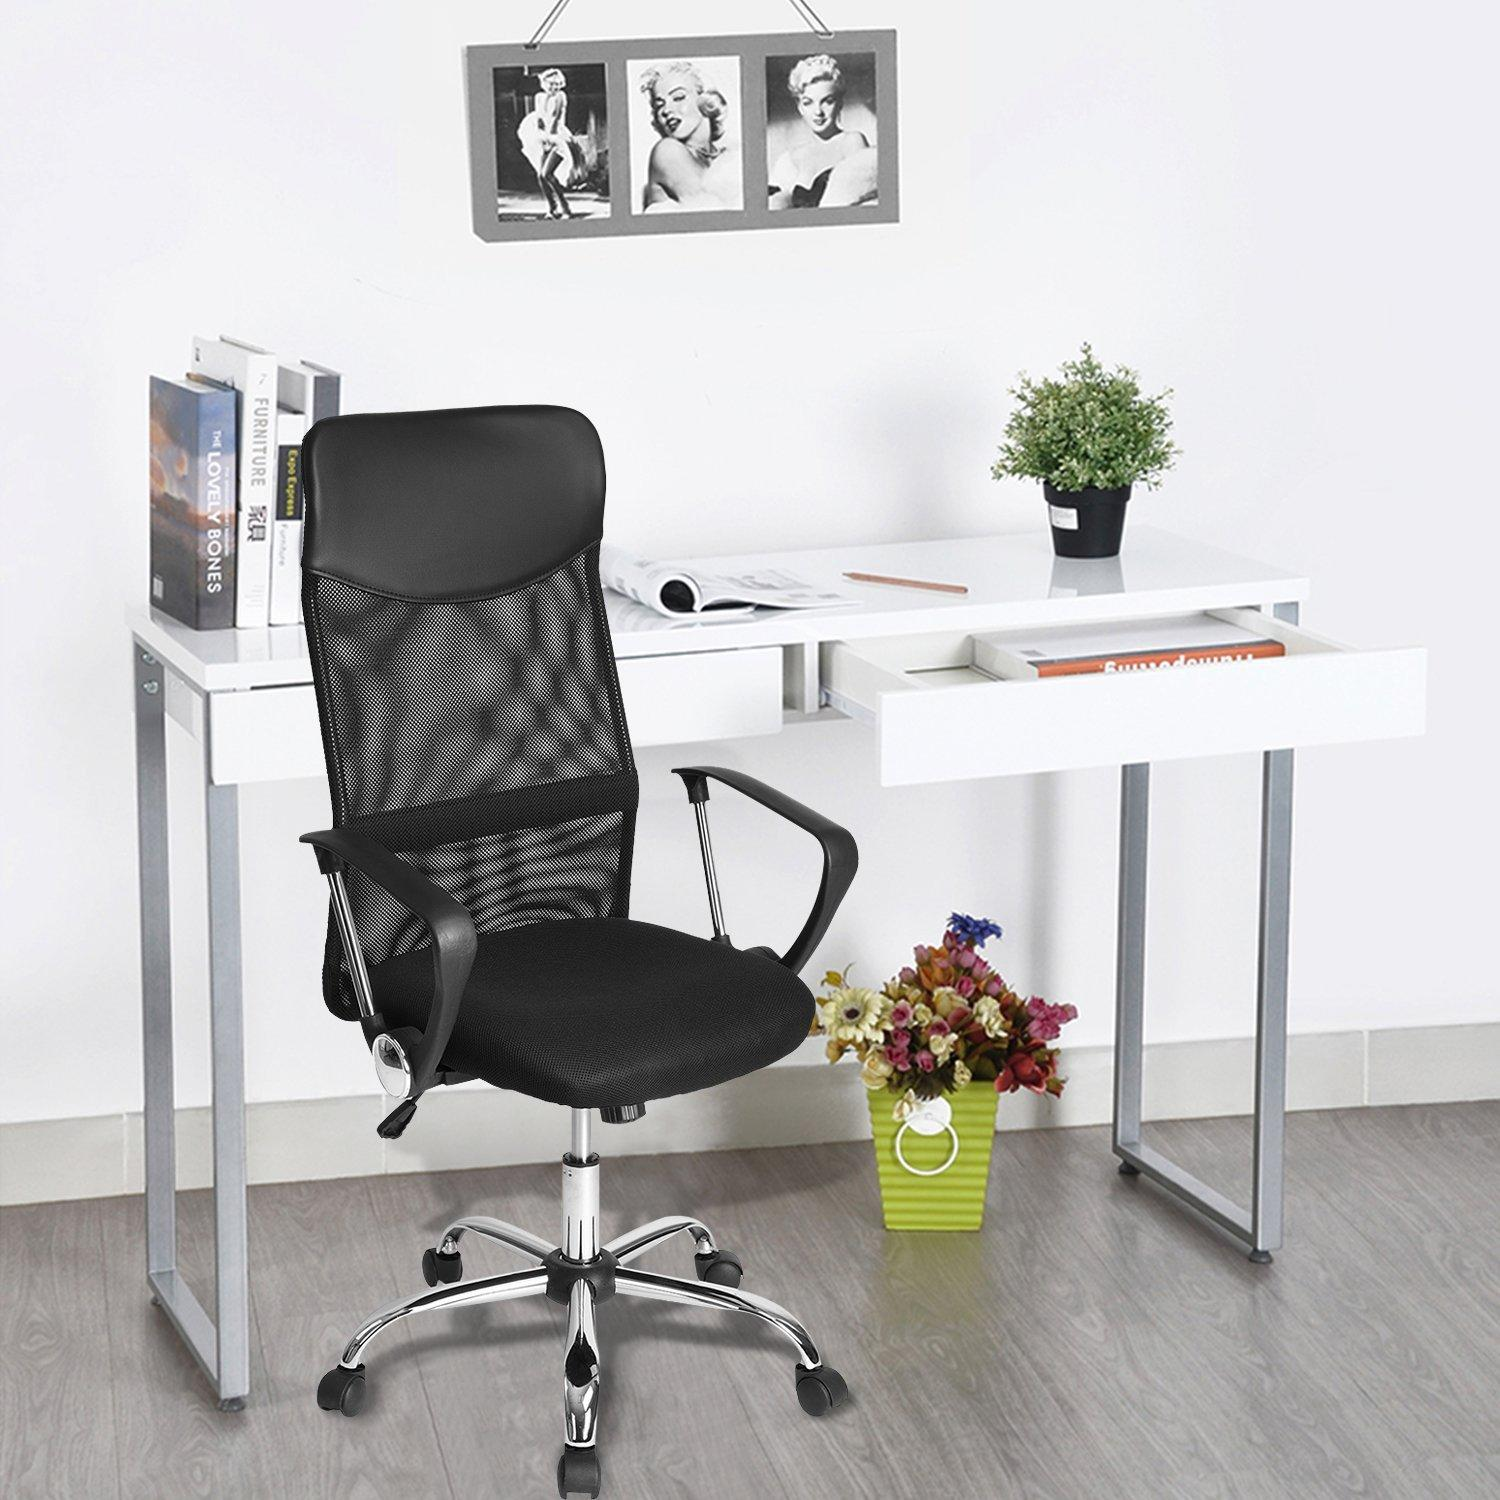 Moustache® Ergonomic Adjustable High Back Office Mesh Chair